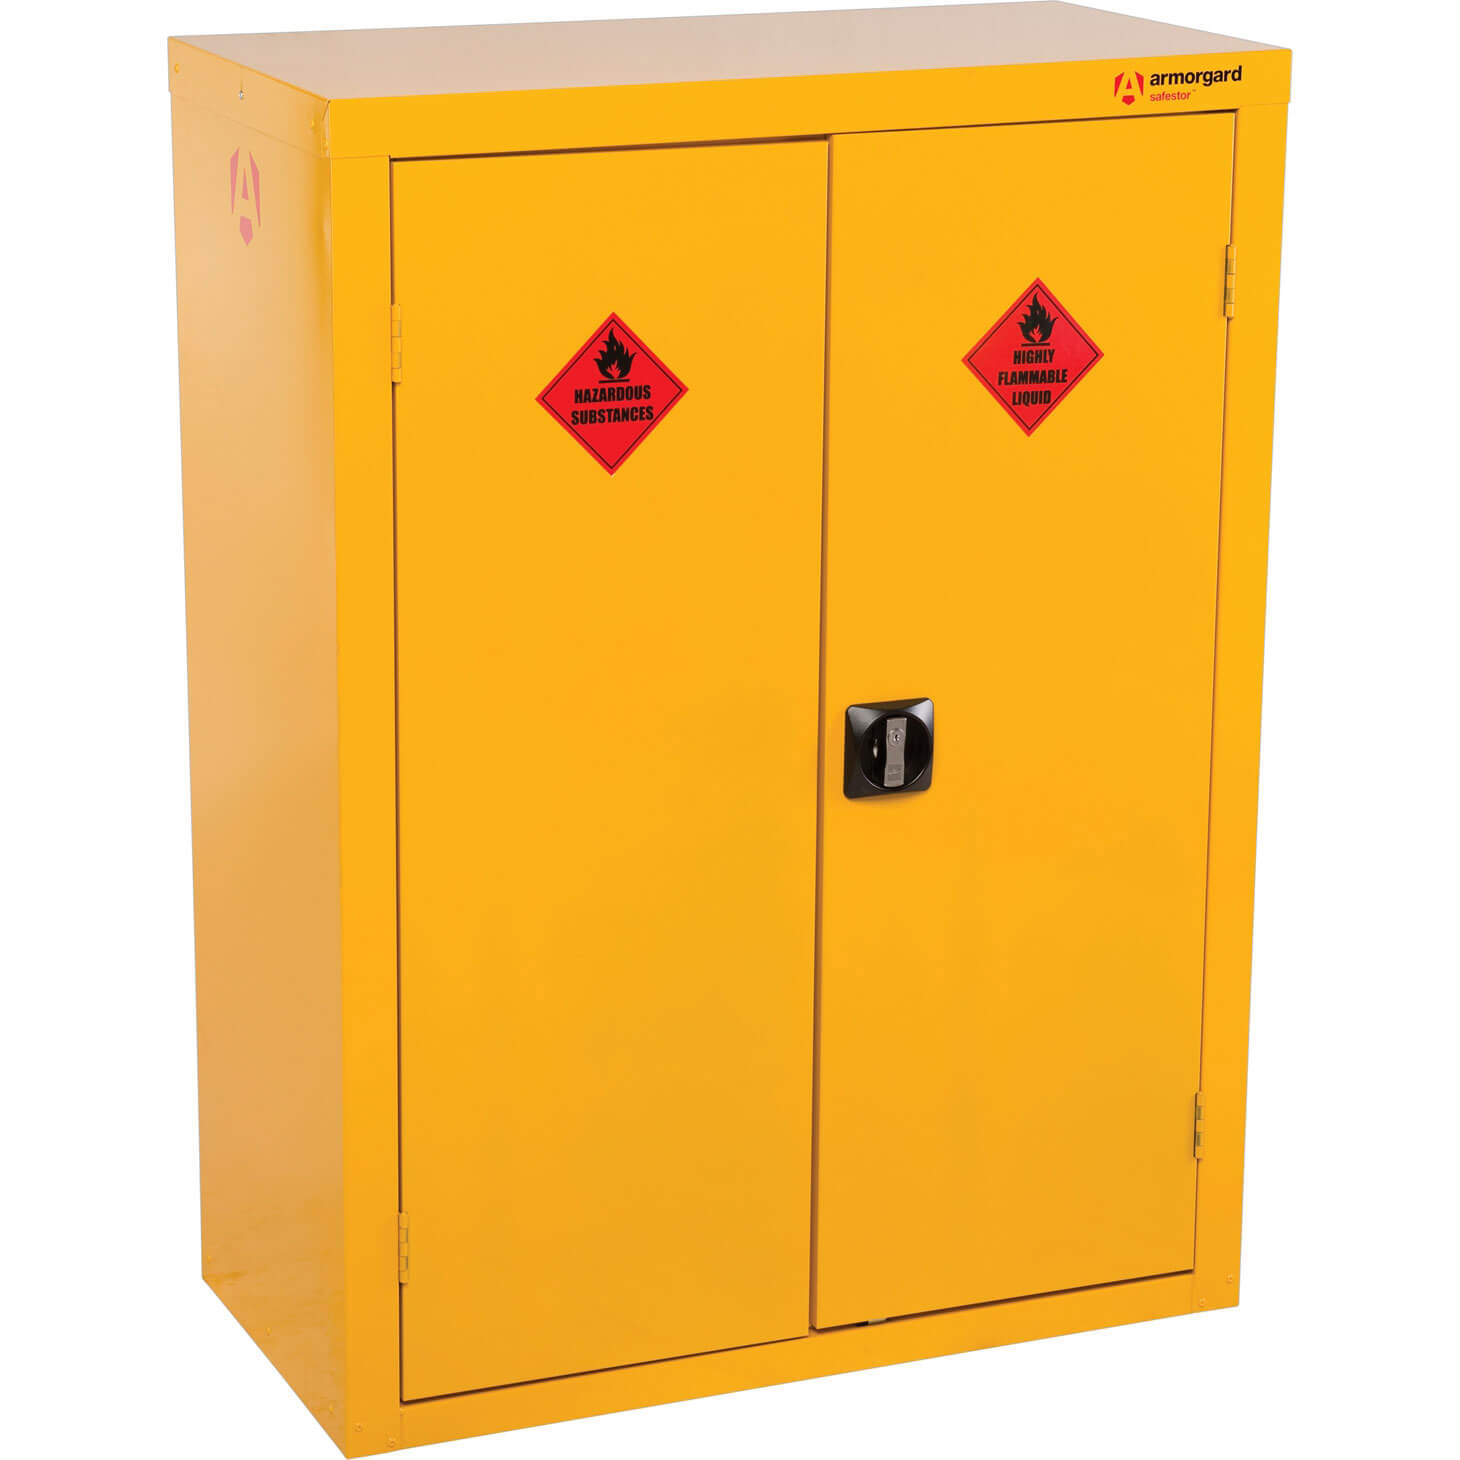 Armorgard Safestor Hazardous Materials Cabinet 900mm x 460mm x 1200mm